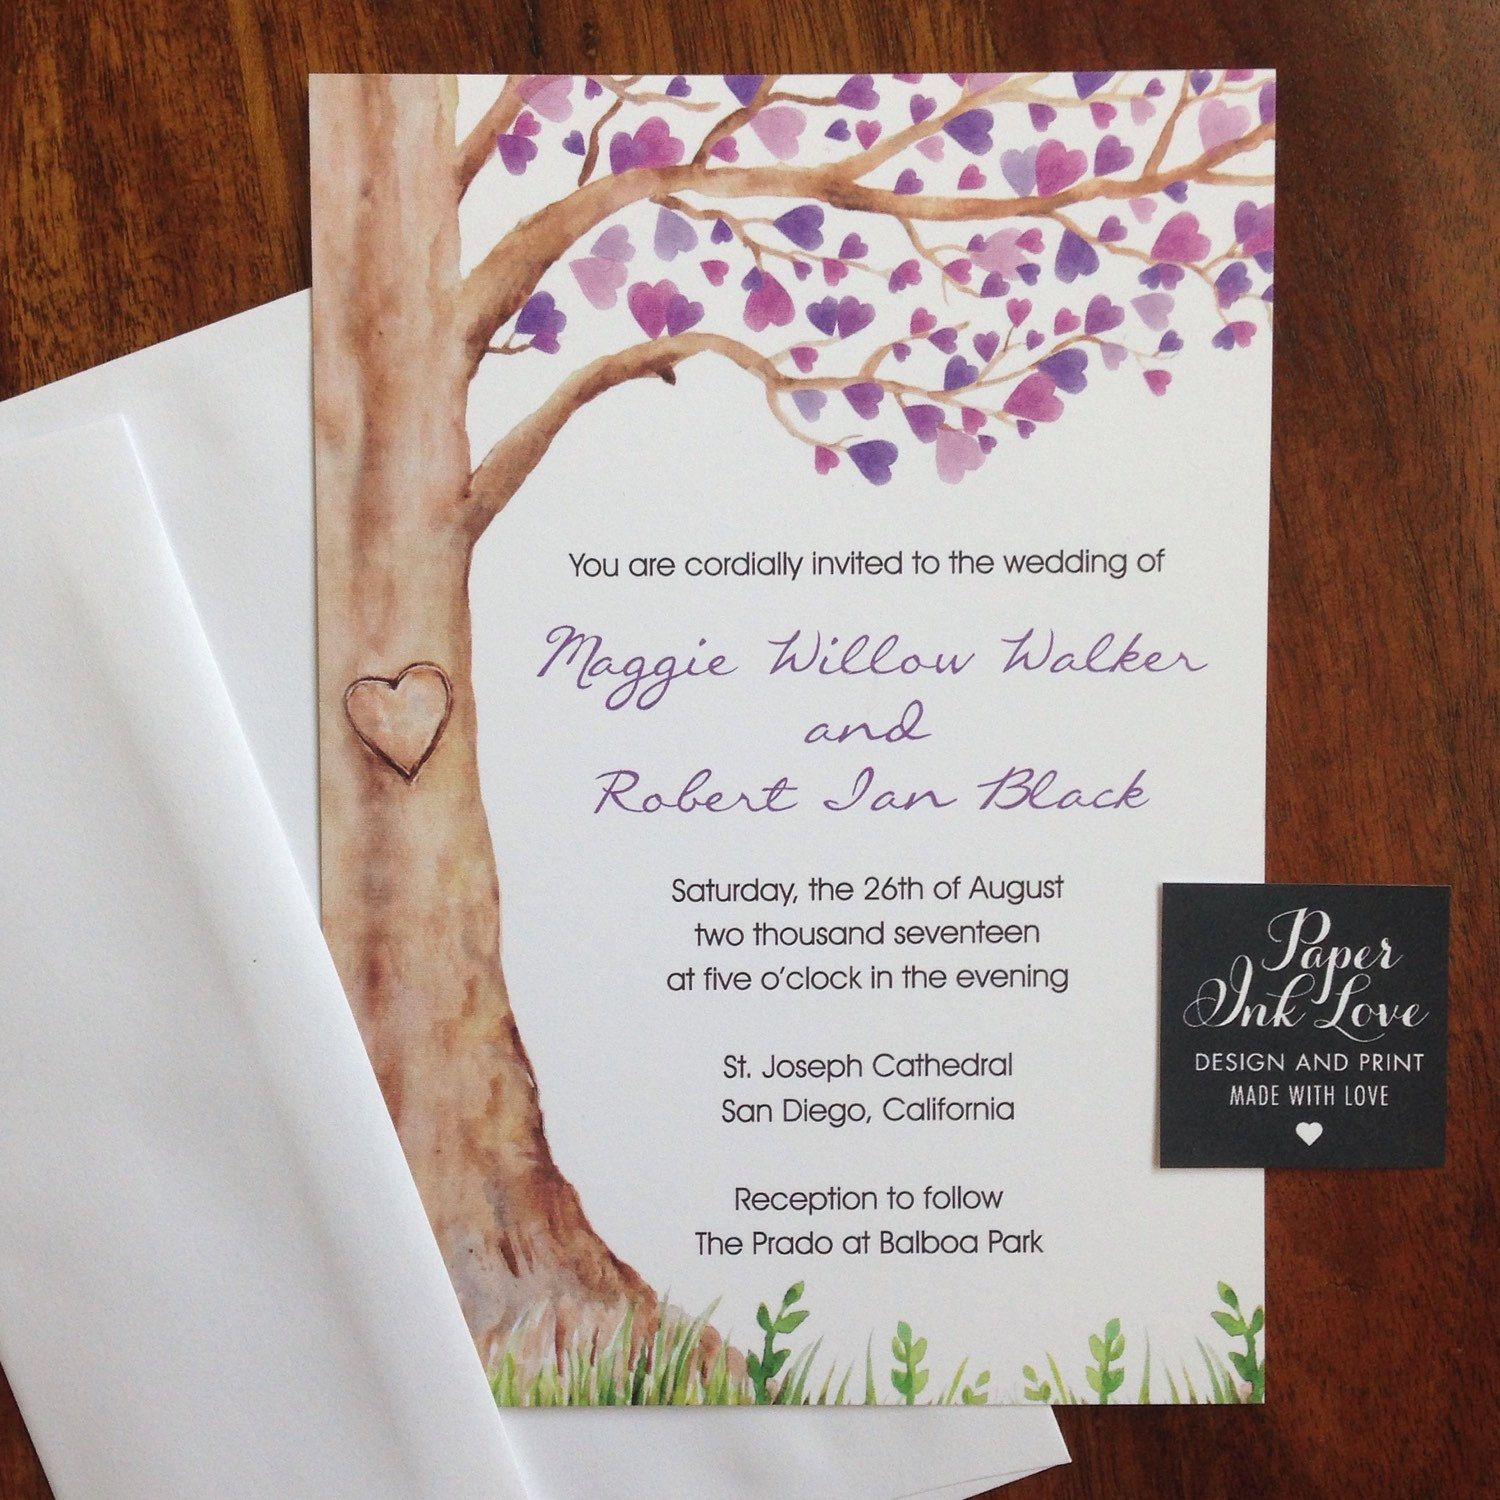 Watercolor wedding invitations by Paper Ink Love